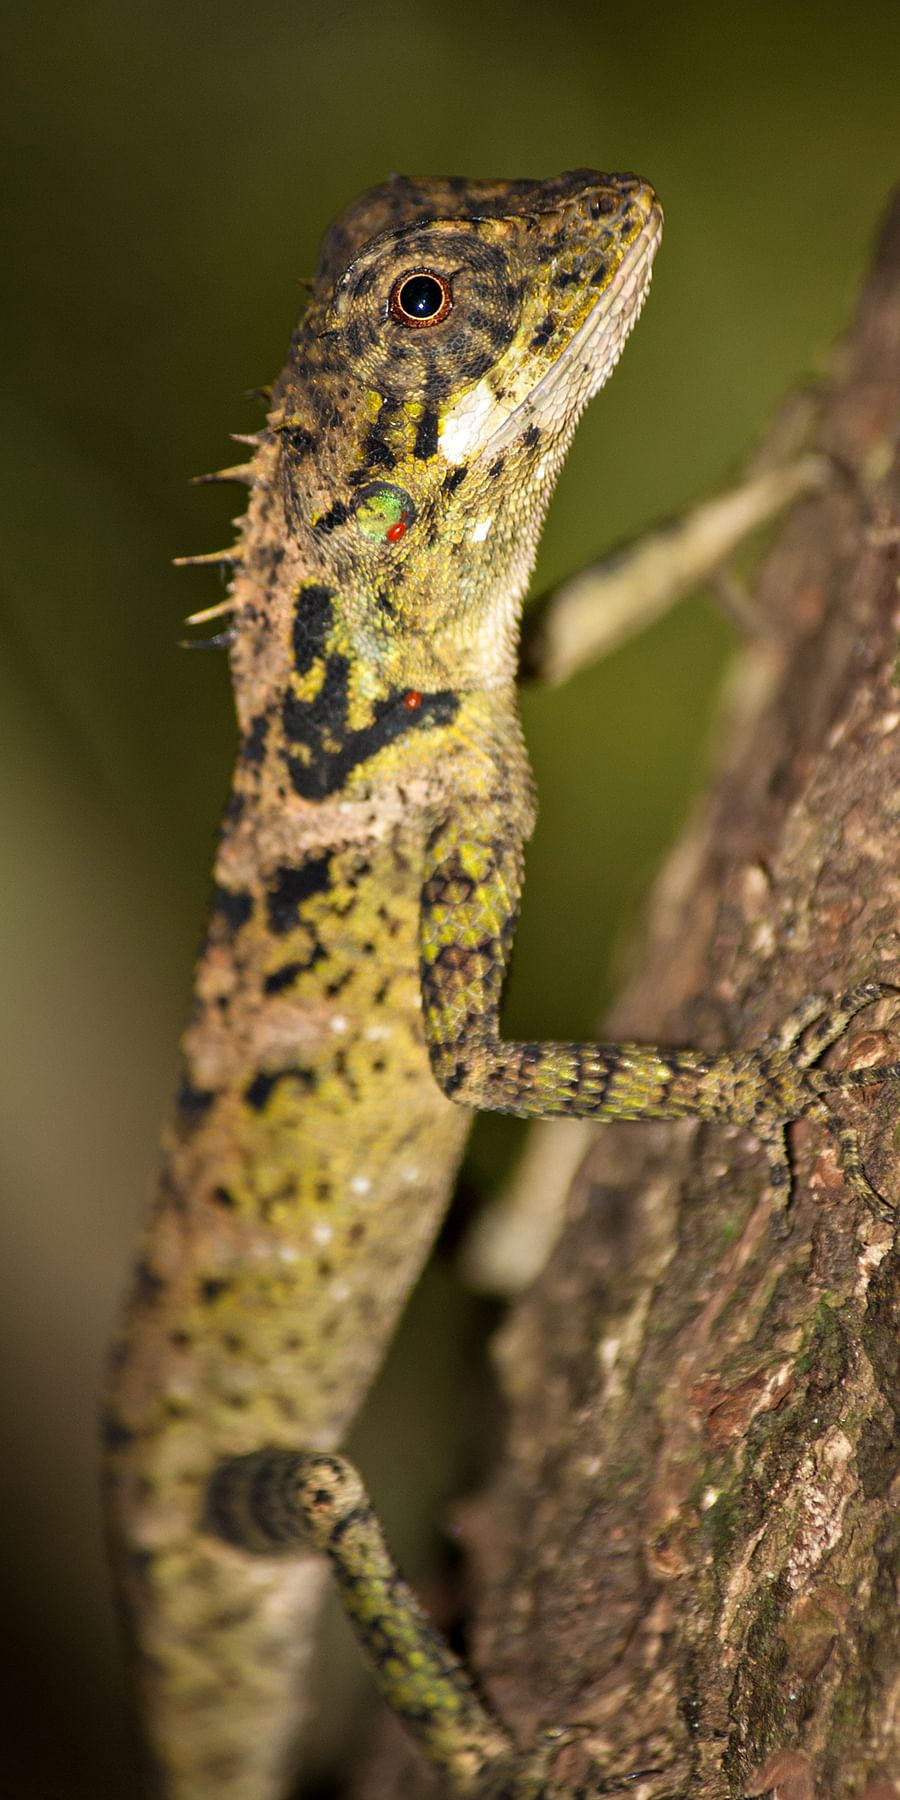 Herpetofaunal survey in rainforest remnants of the Western Ghats, India